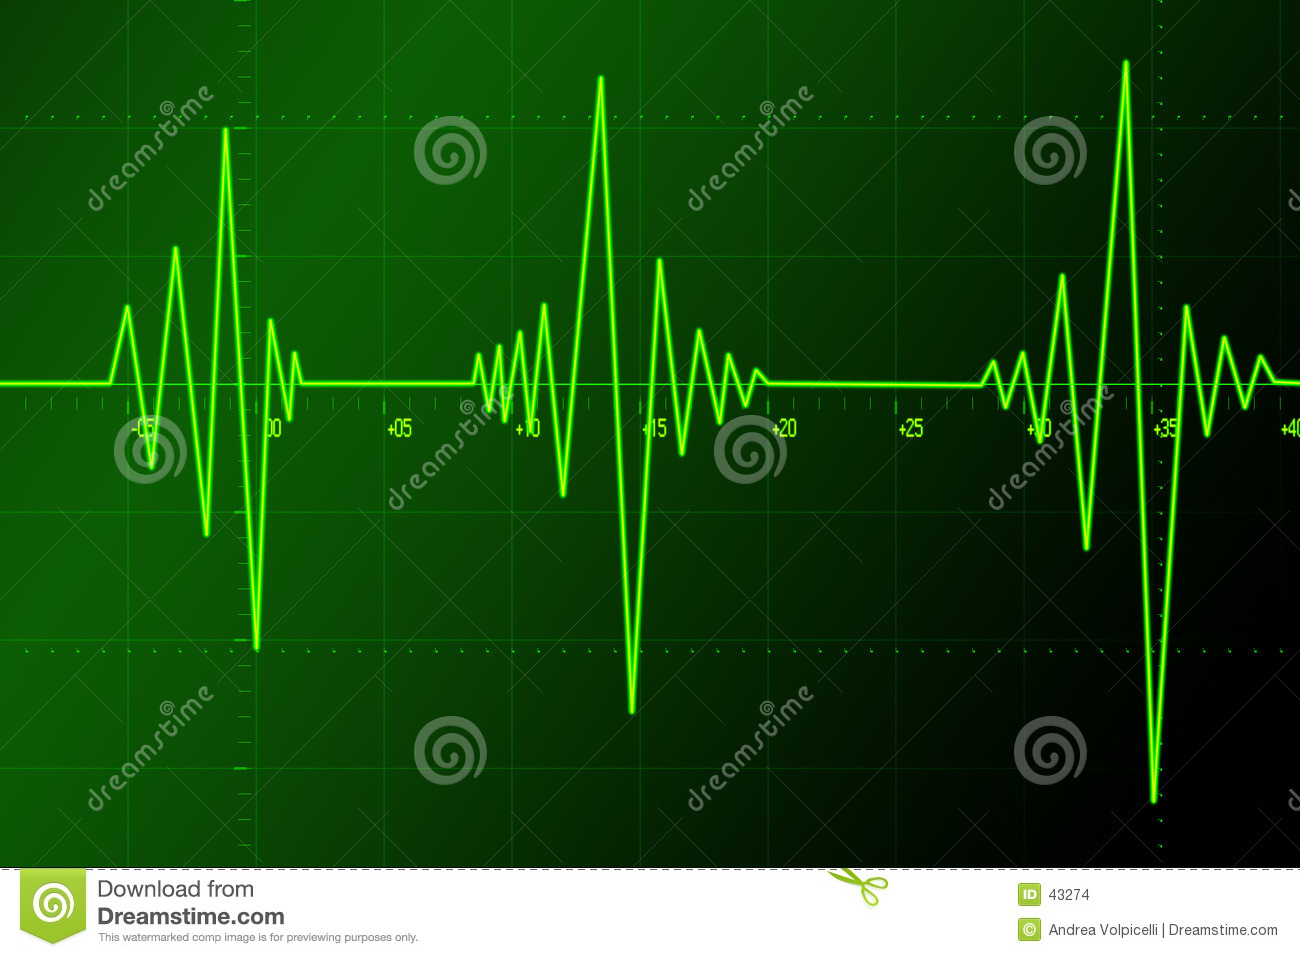 sound doppler Doppler effect the doppler effect causes the pitch of a sound source to appear to rise or fall due to motion of the source and/or listener relative to each other you have probably heard the pitch of a horn drop lower as it passes by (eg, from a moving train.